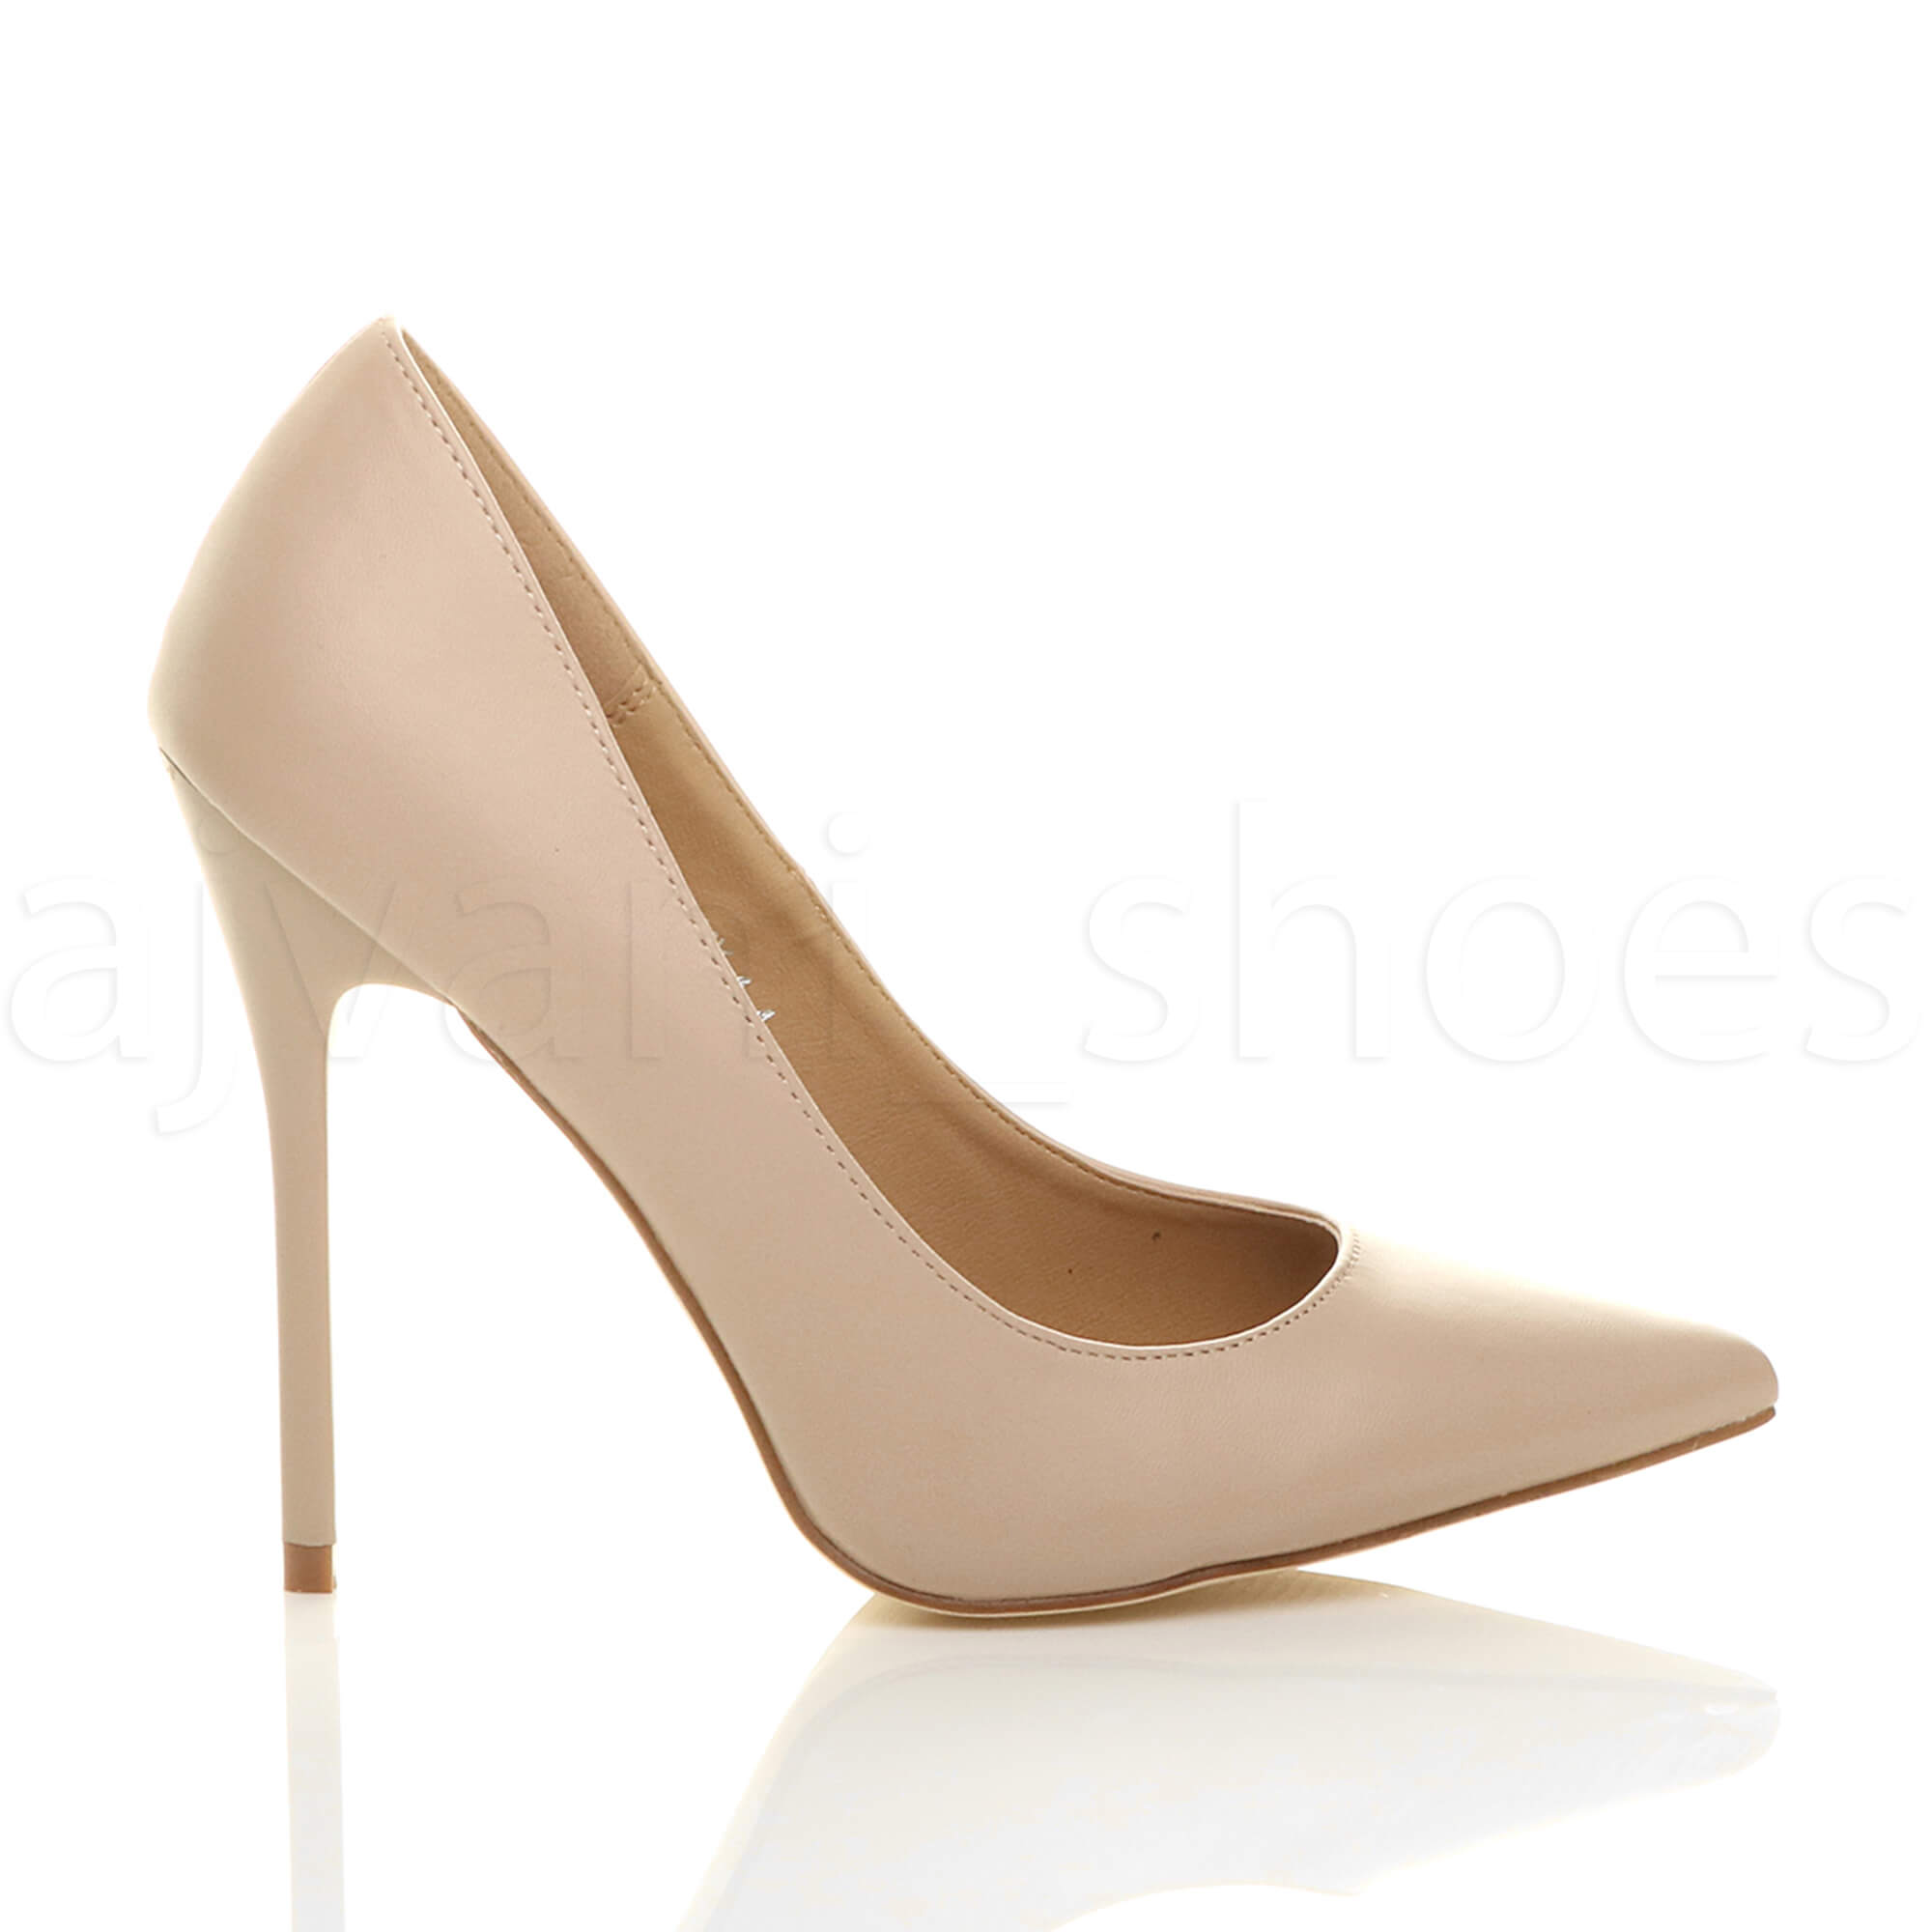 WOMENS-LADIES-HIGH-HEEL-POINTED-CONTRAST-COURT-SMART-PARTY-WORK-SHOES-PUMPS-SIZE thumbnail 121